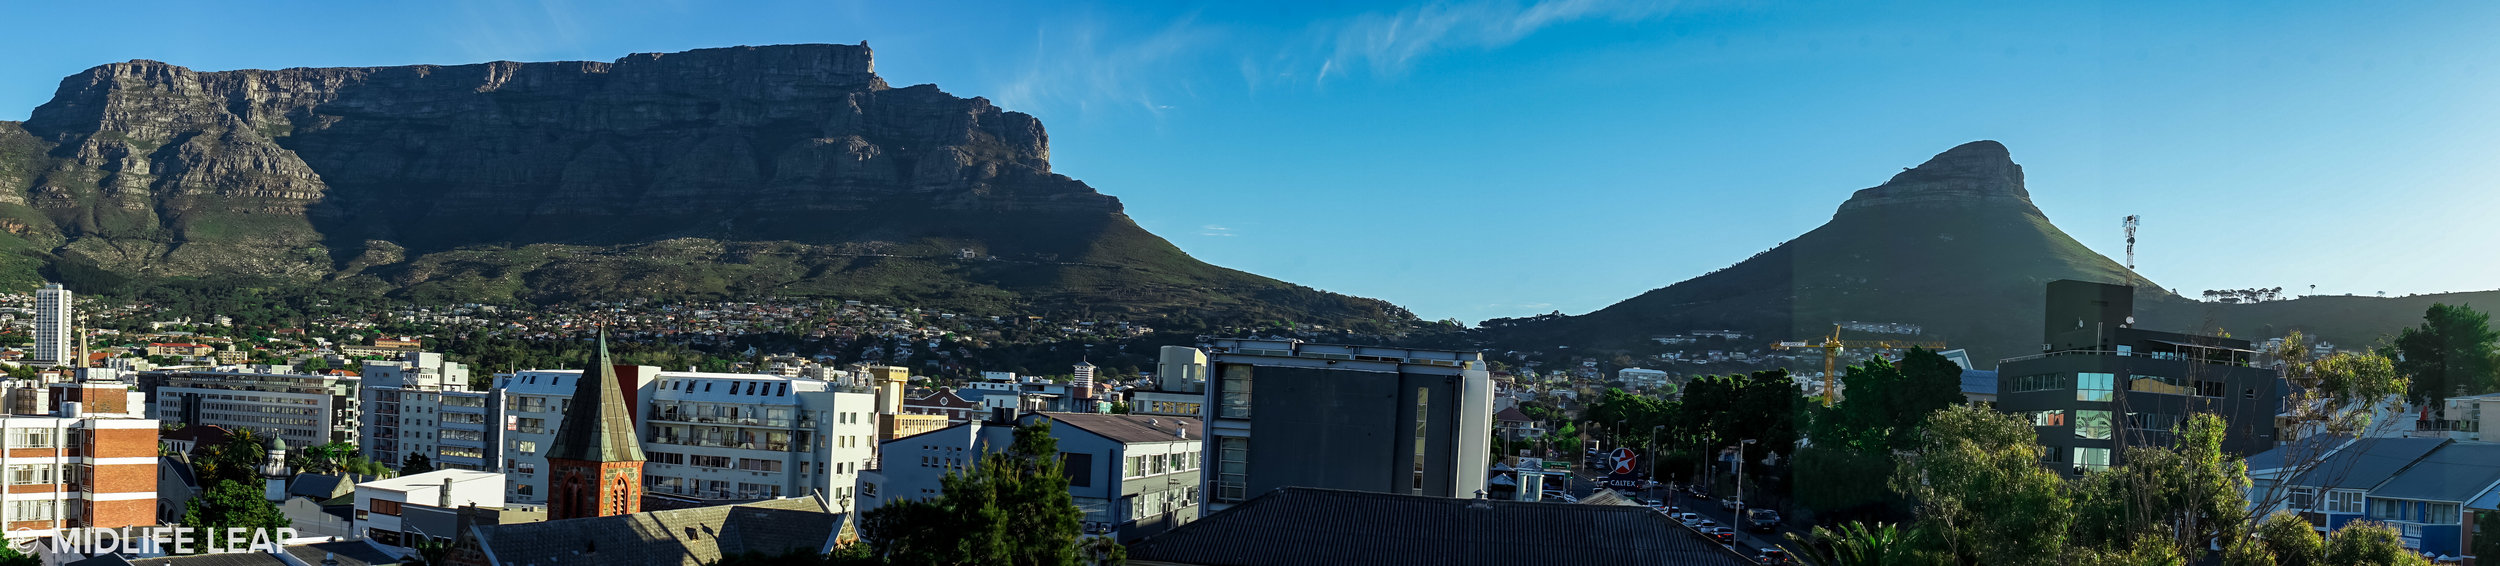 The insane view of Table Mountain (left) and Lion's Head (right) from our second Airbnb in Garden's